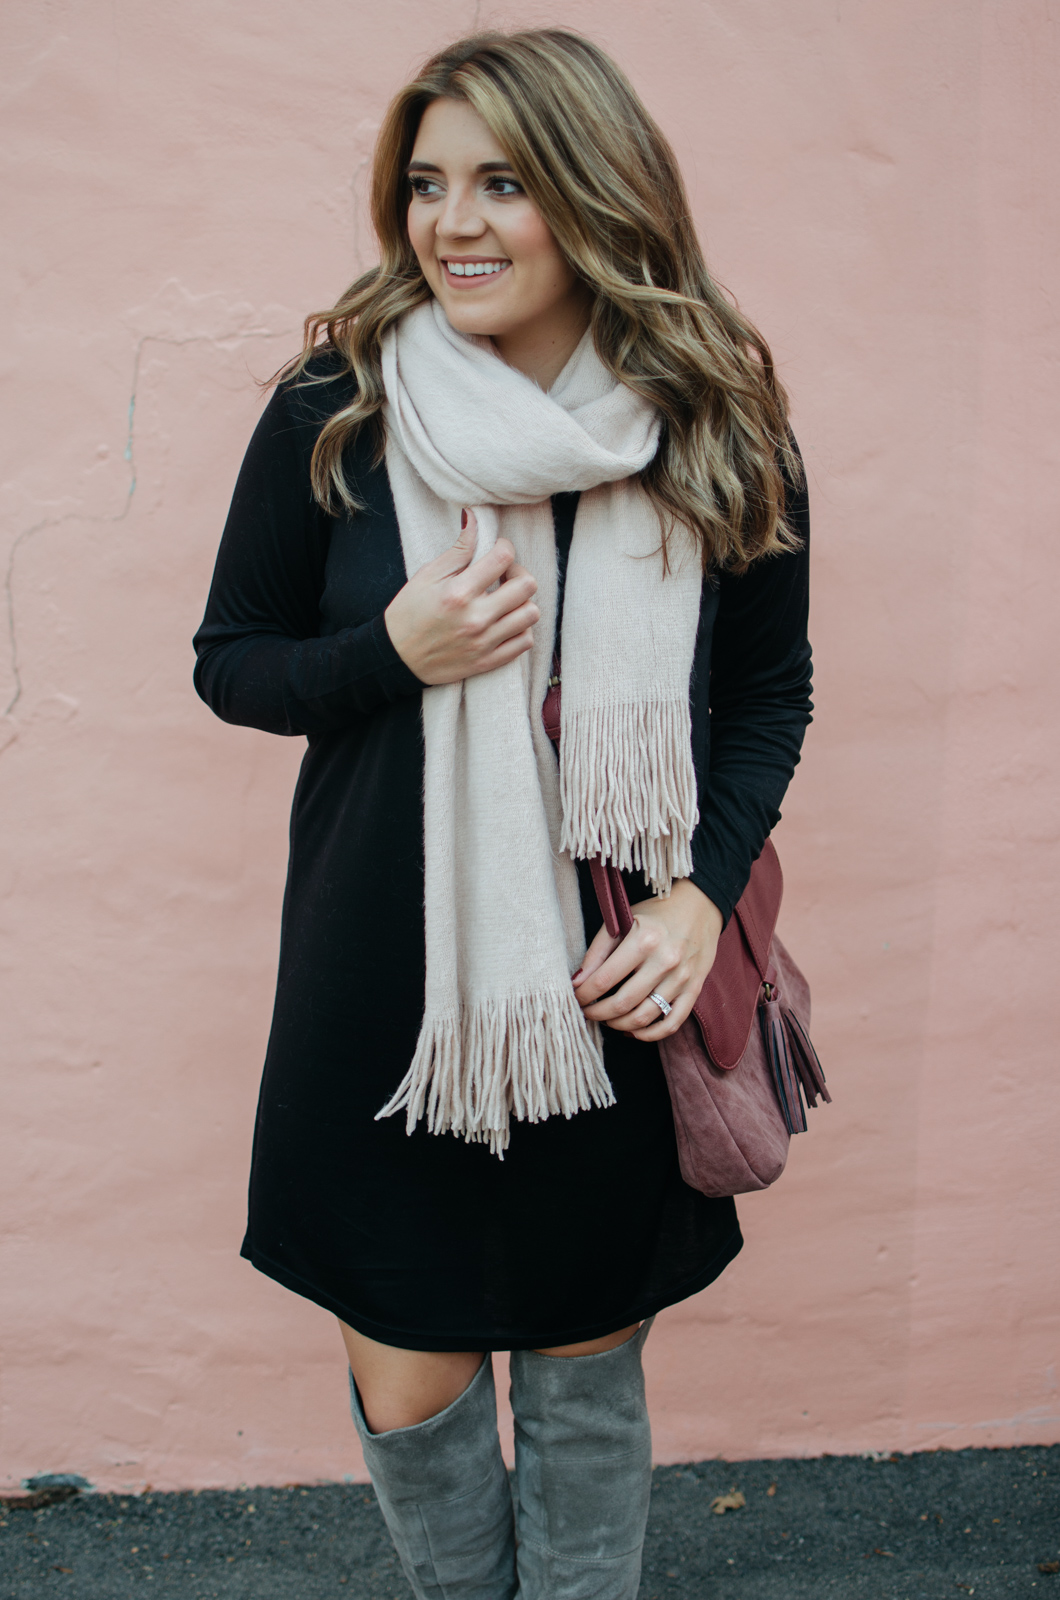 winter dress outfit - blush scarf dress outfit | Click through for outfit details or to see more cute Winter outfit ideas. bylaurenm.com